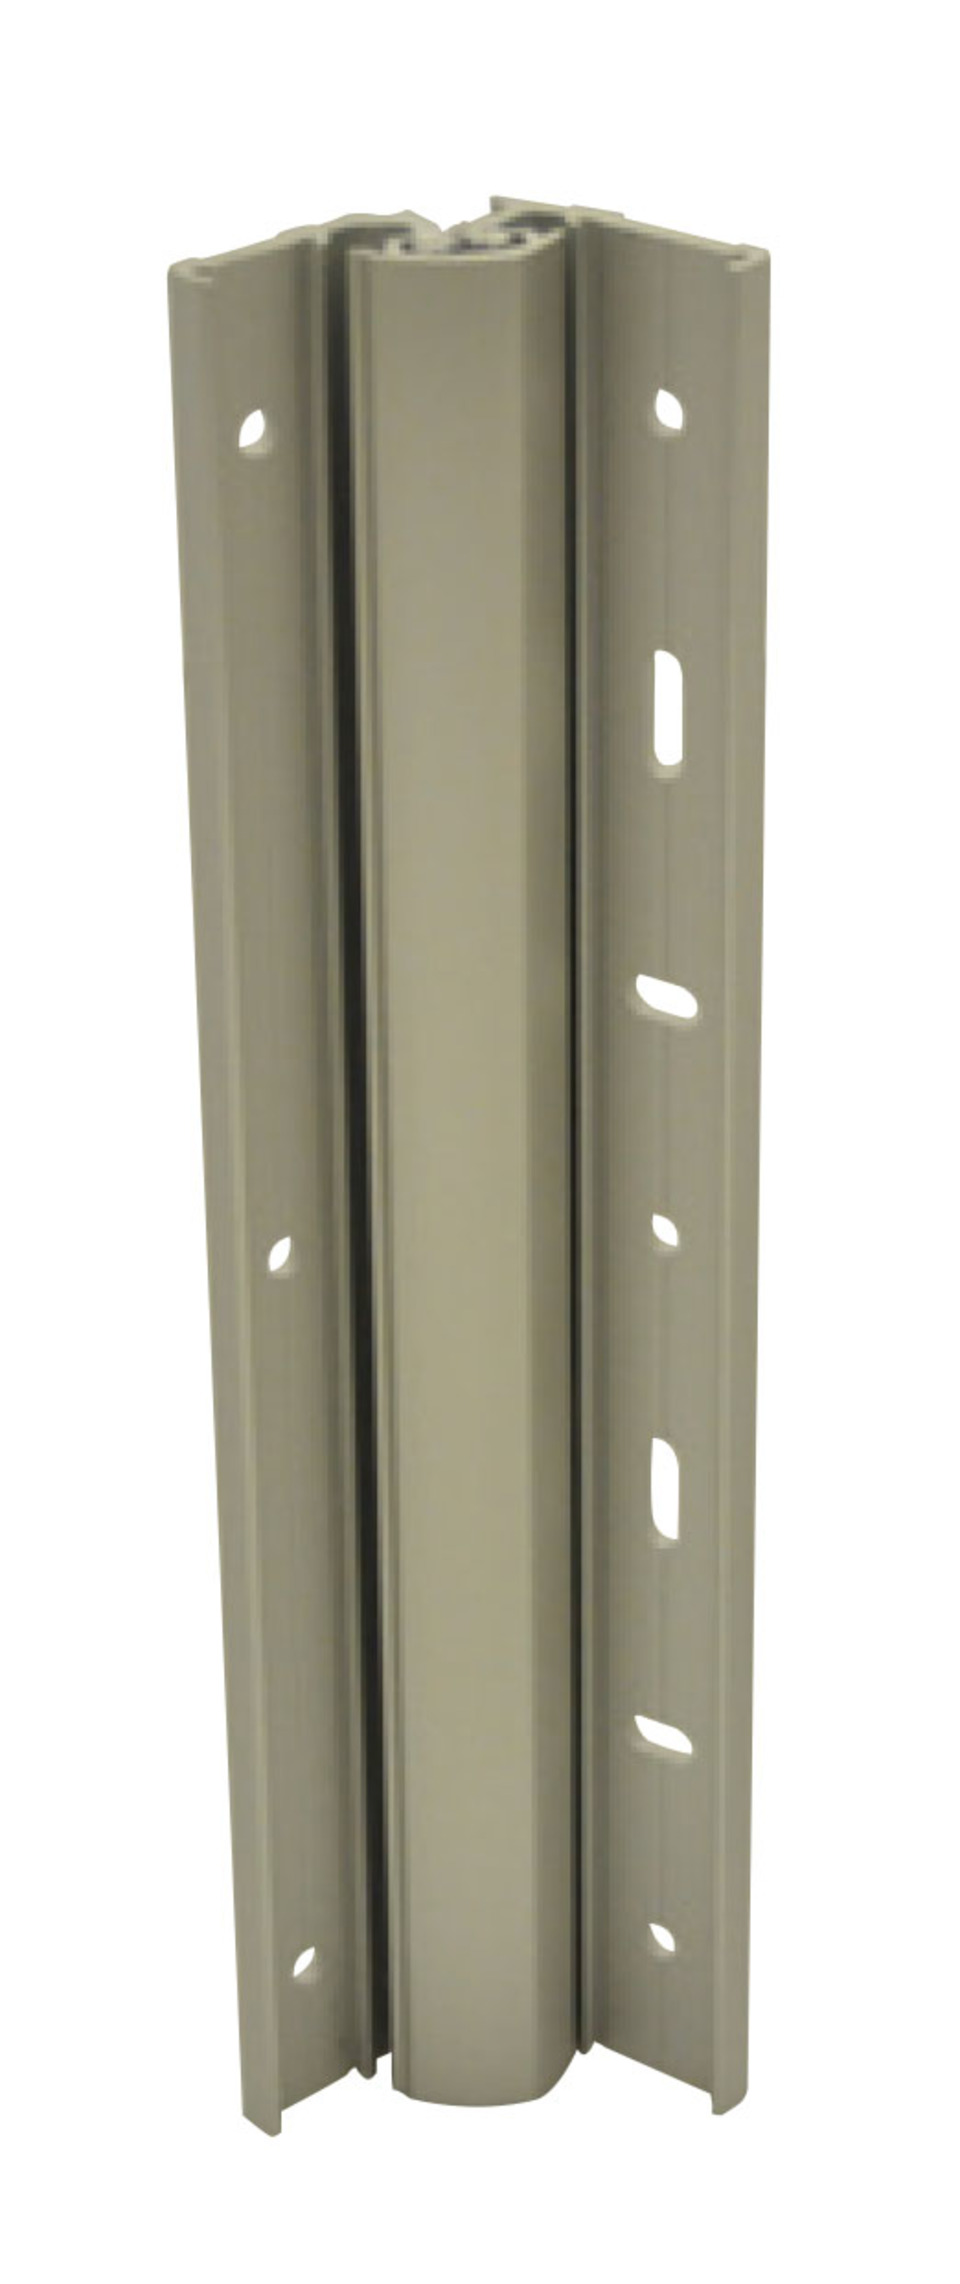 Fix Door Problems With Continuous Hinges